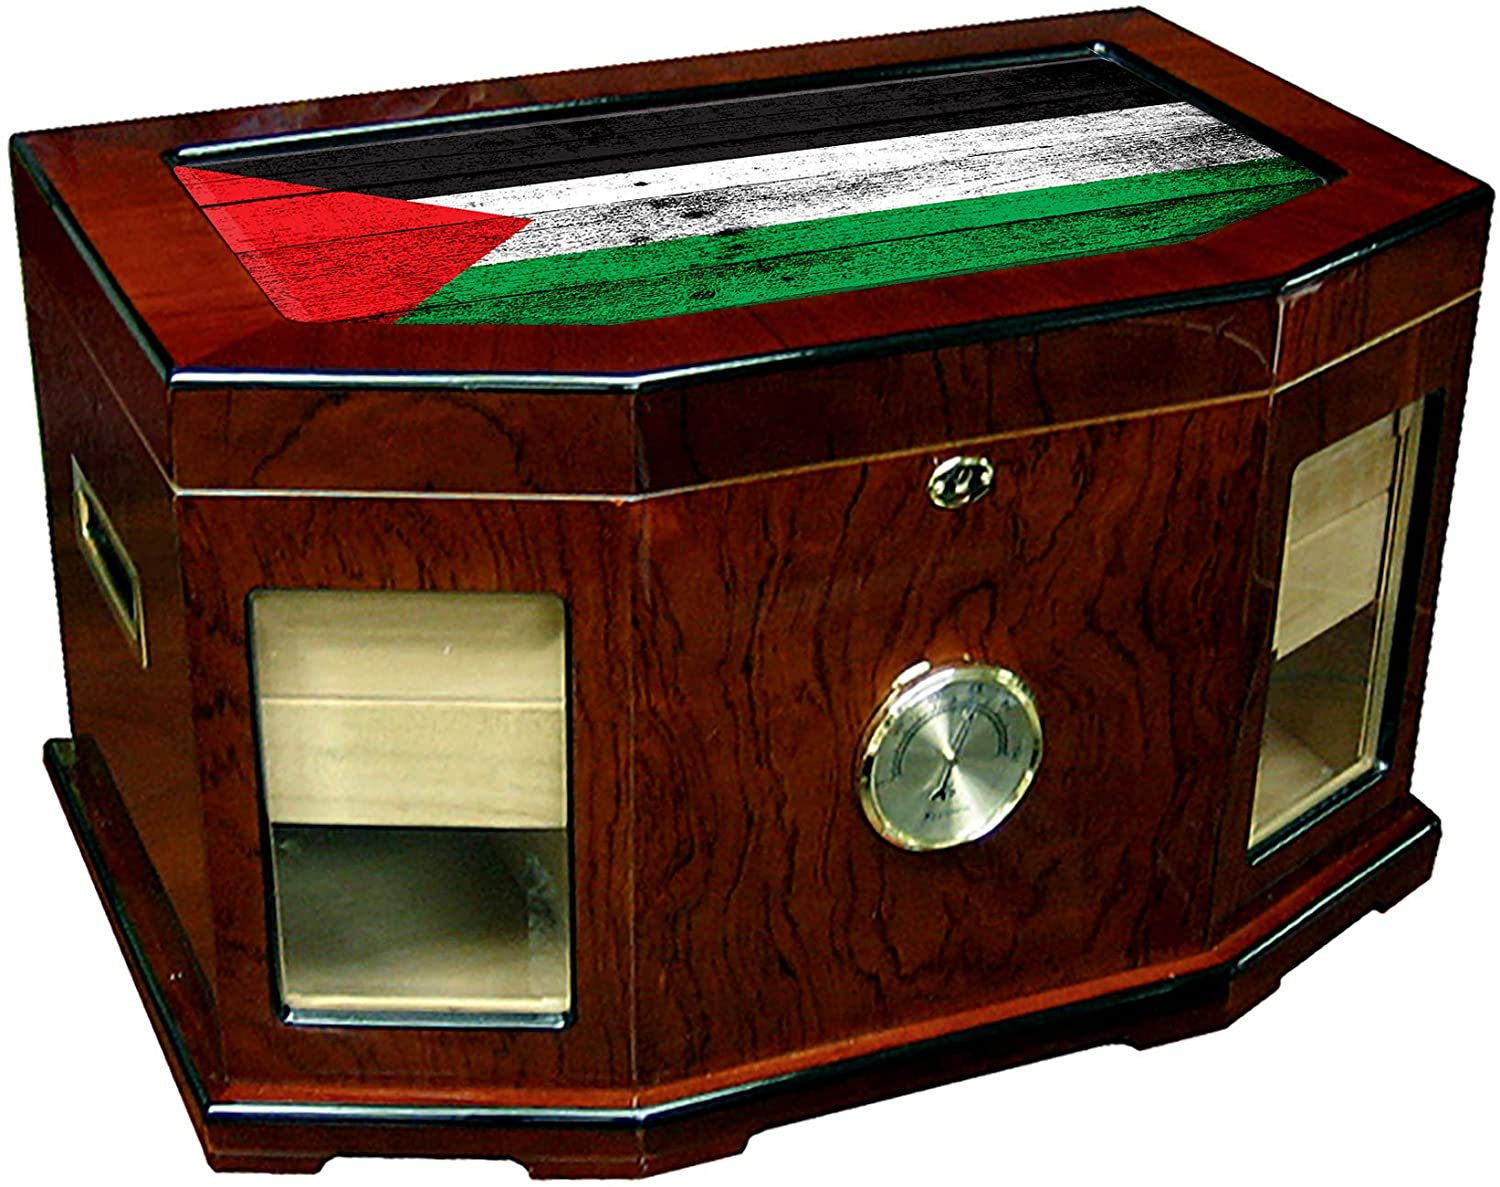 Large Premium Desktop Humidor - Glass Top - Flag of Palestine (Palestinian) - Wood Design - 300 Cigar Capacity - Cedar Lined with Two humidifiers & Large Front Mounted Hygrometer.